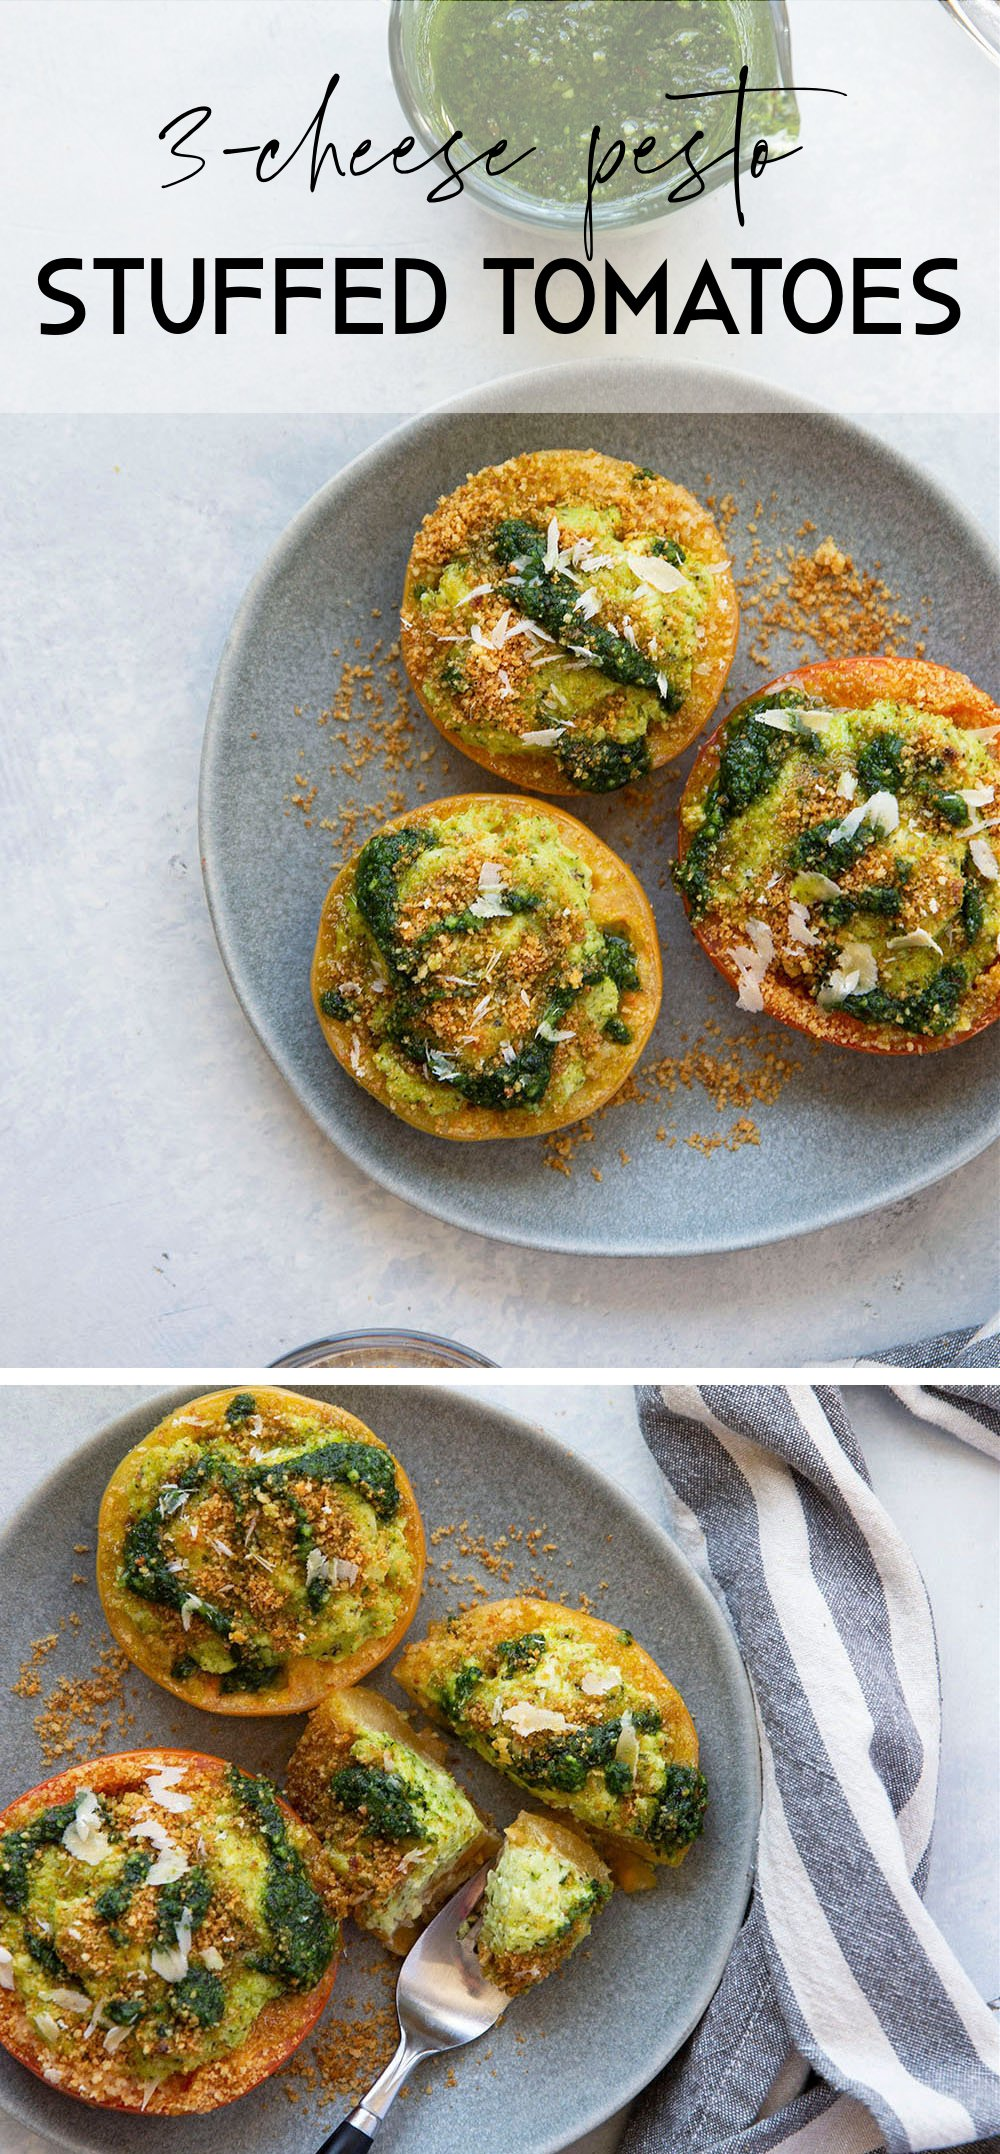 Stuffed with three kinds of cheese and herby pesto, these pesto stuffed tomatoes are easy to whip up in minutes and the perfect use for an abundance of tomatoes!